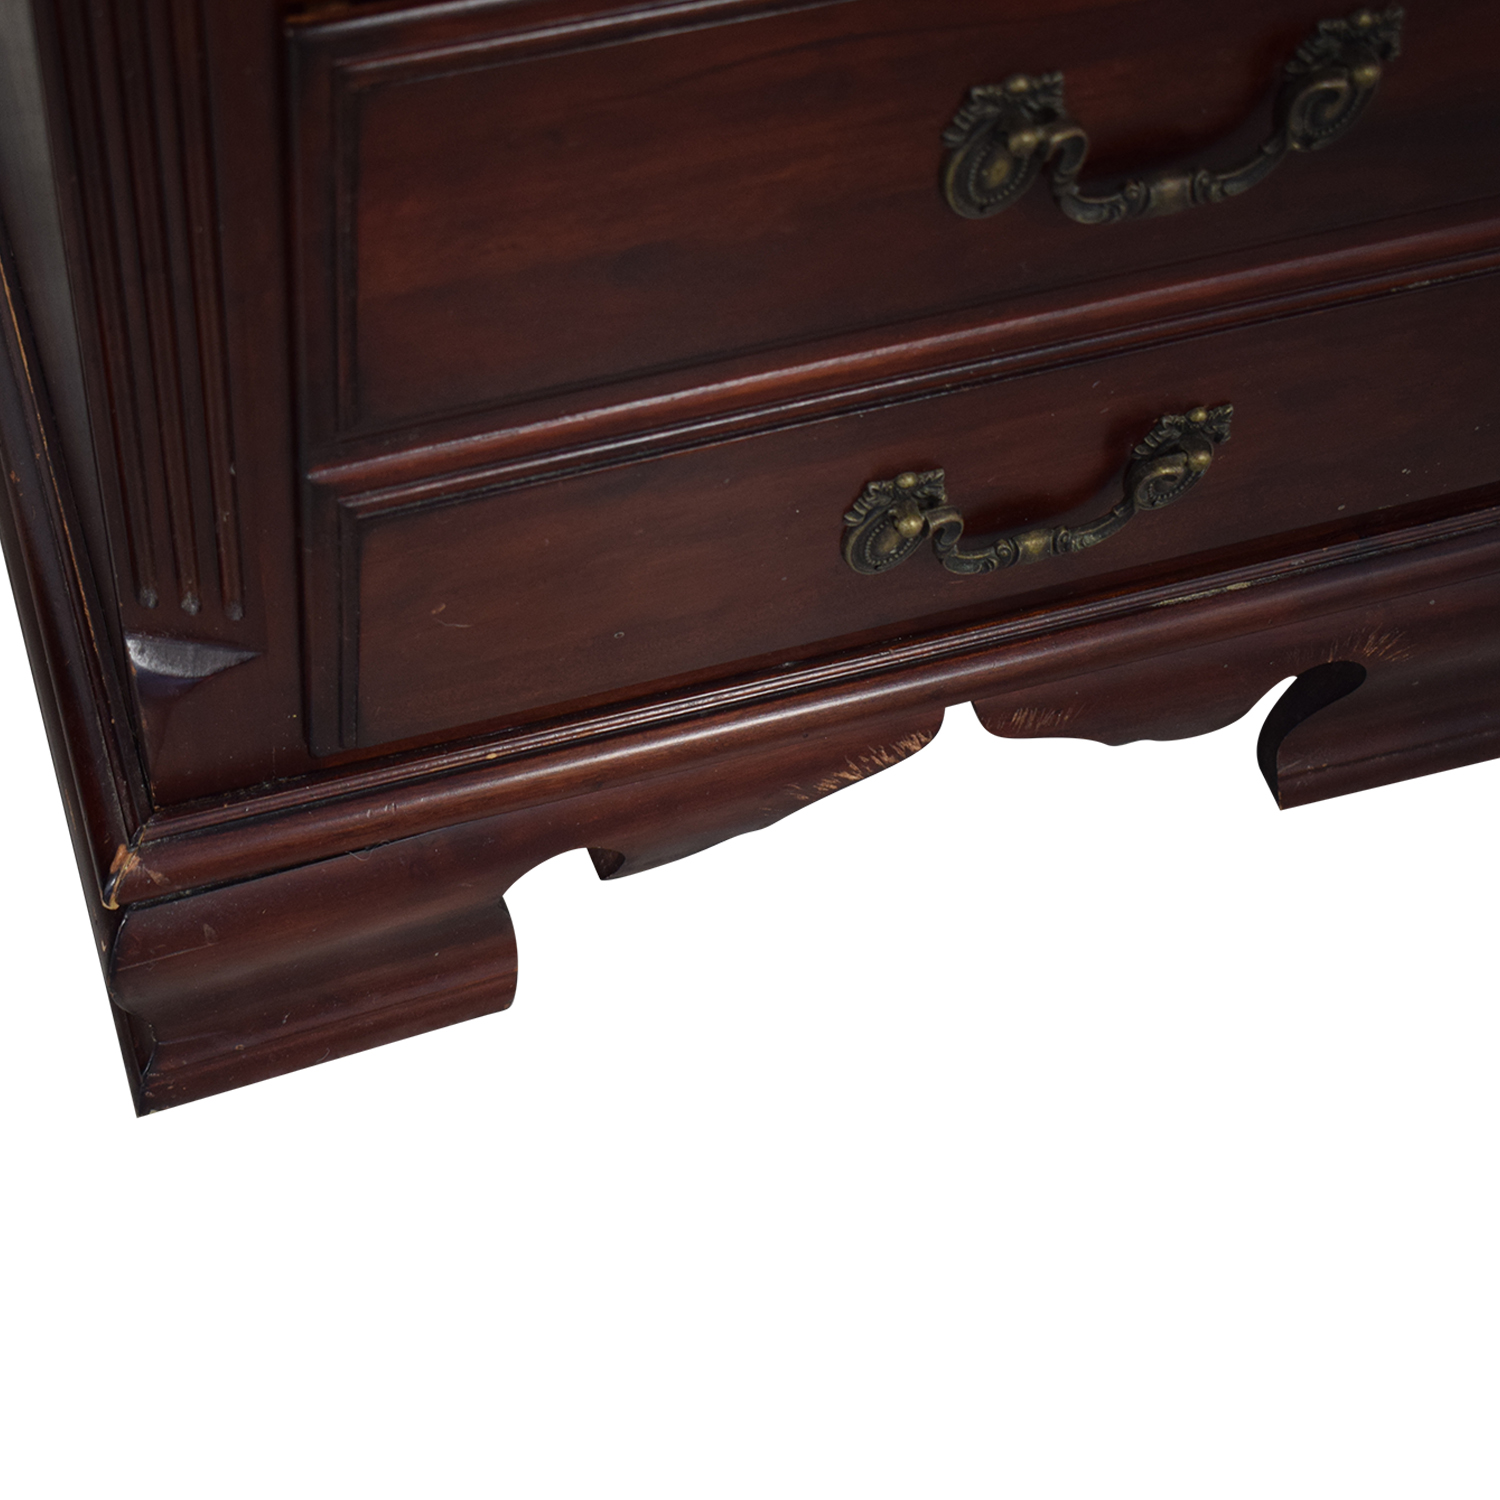 Heirloom Traditions Two-Drawer End Tables Storage